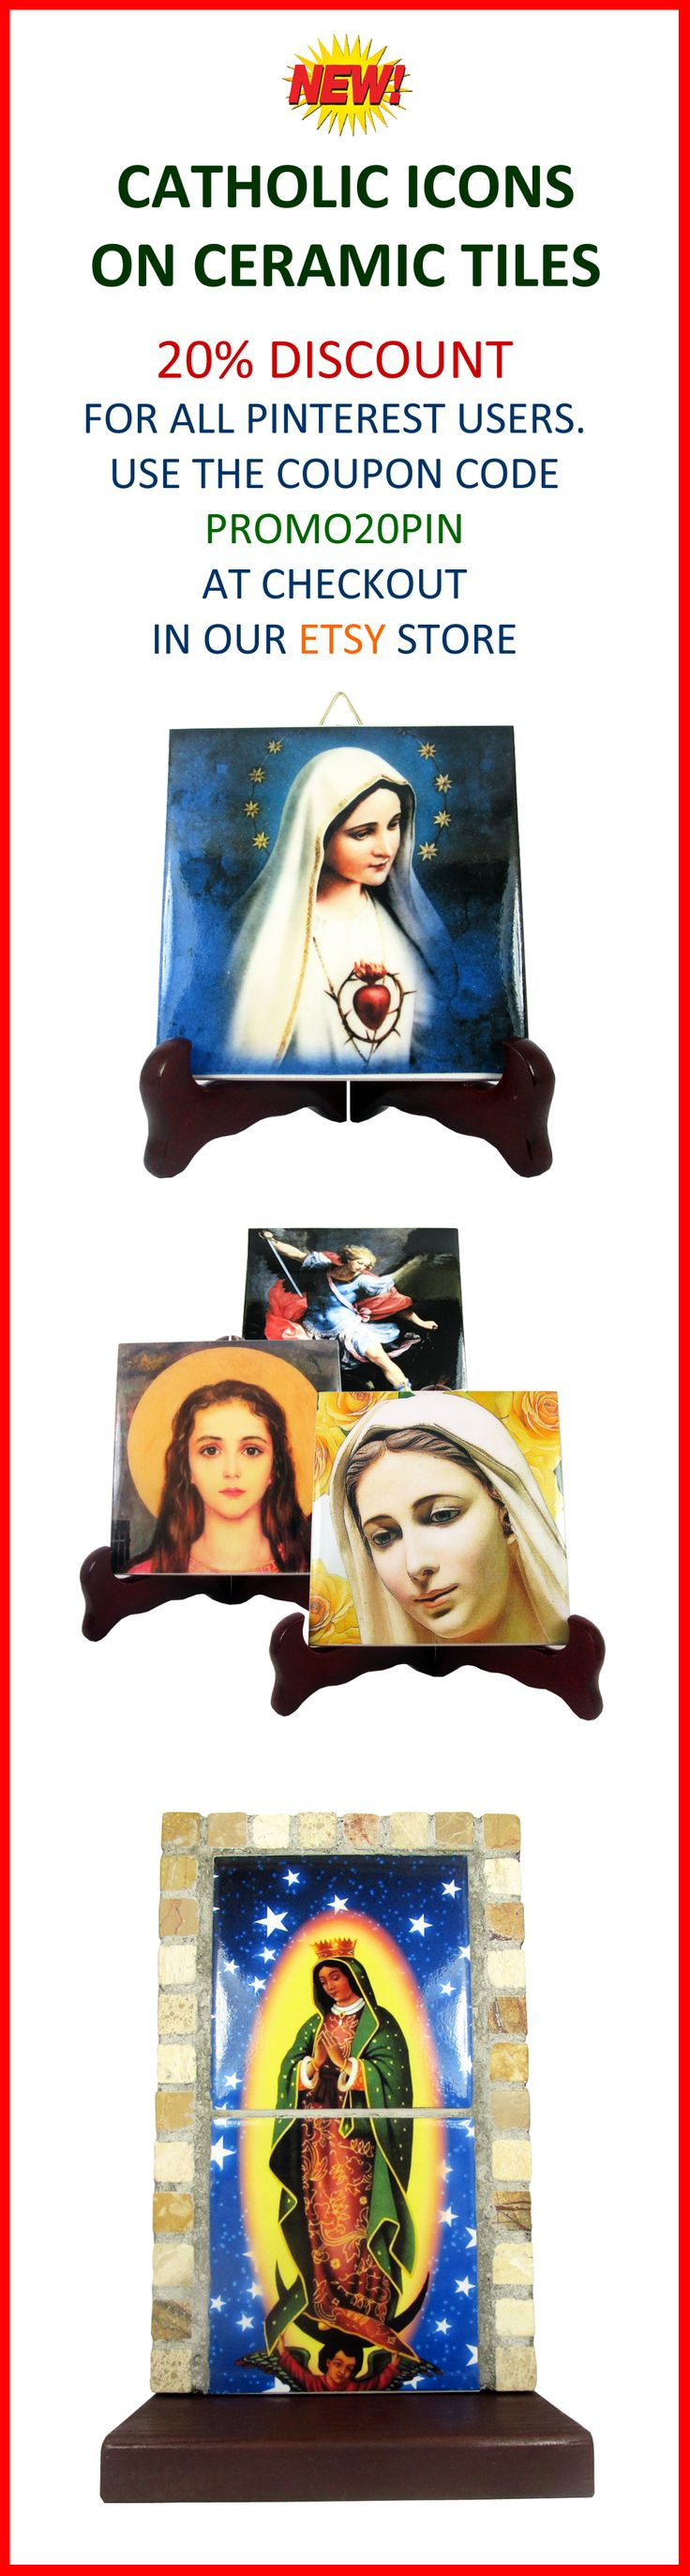 New of the year! Religious Icons on Ceramic Tiles. Visit our Etsy store and use the coupon code PROMO20PIN. You will have a 20% discount on all our works. https://www.etsy.com/shop/TerryTiles2014?ref=hdr_shop_menu&section_id=14950788